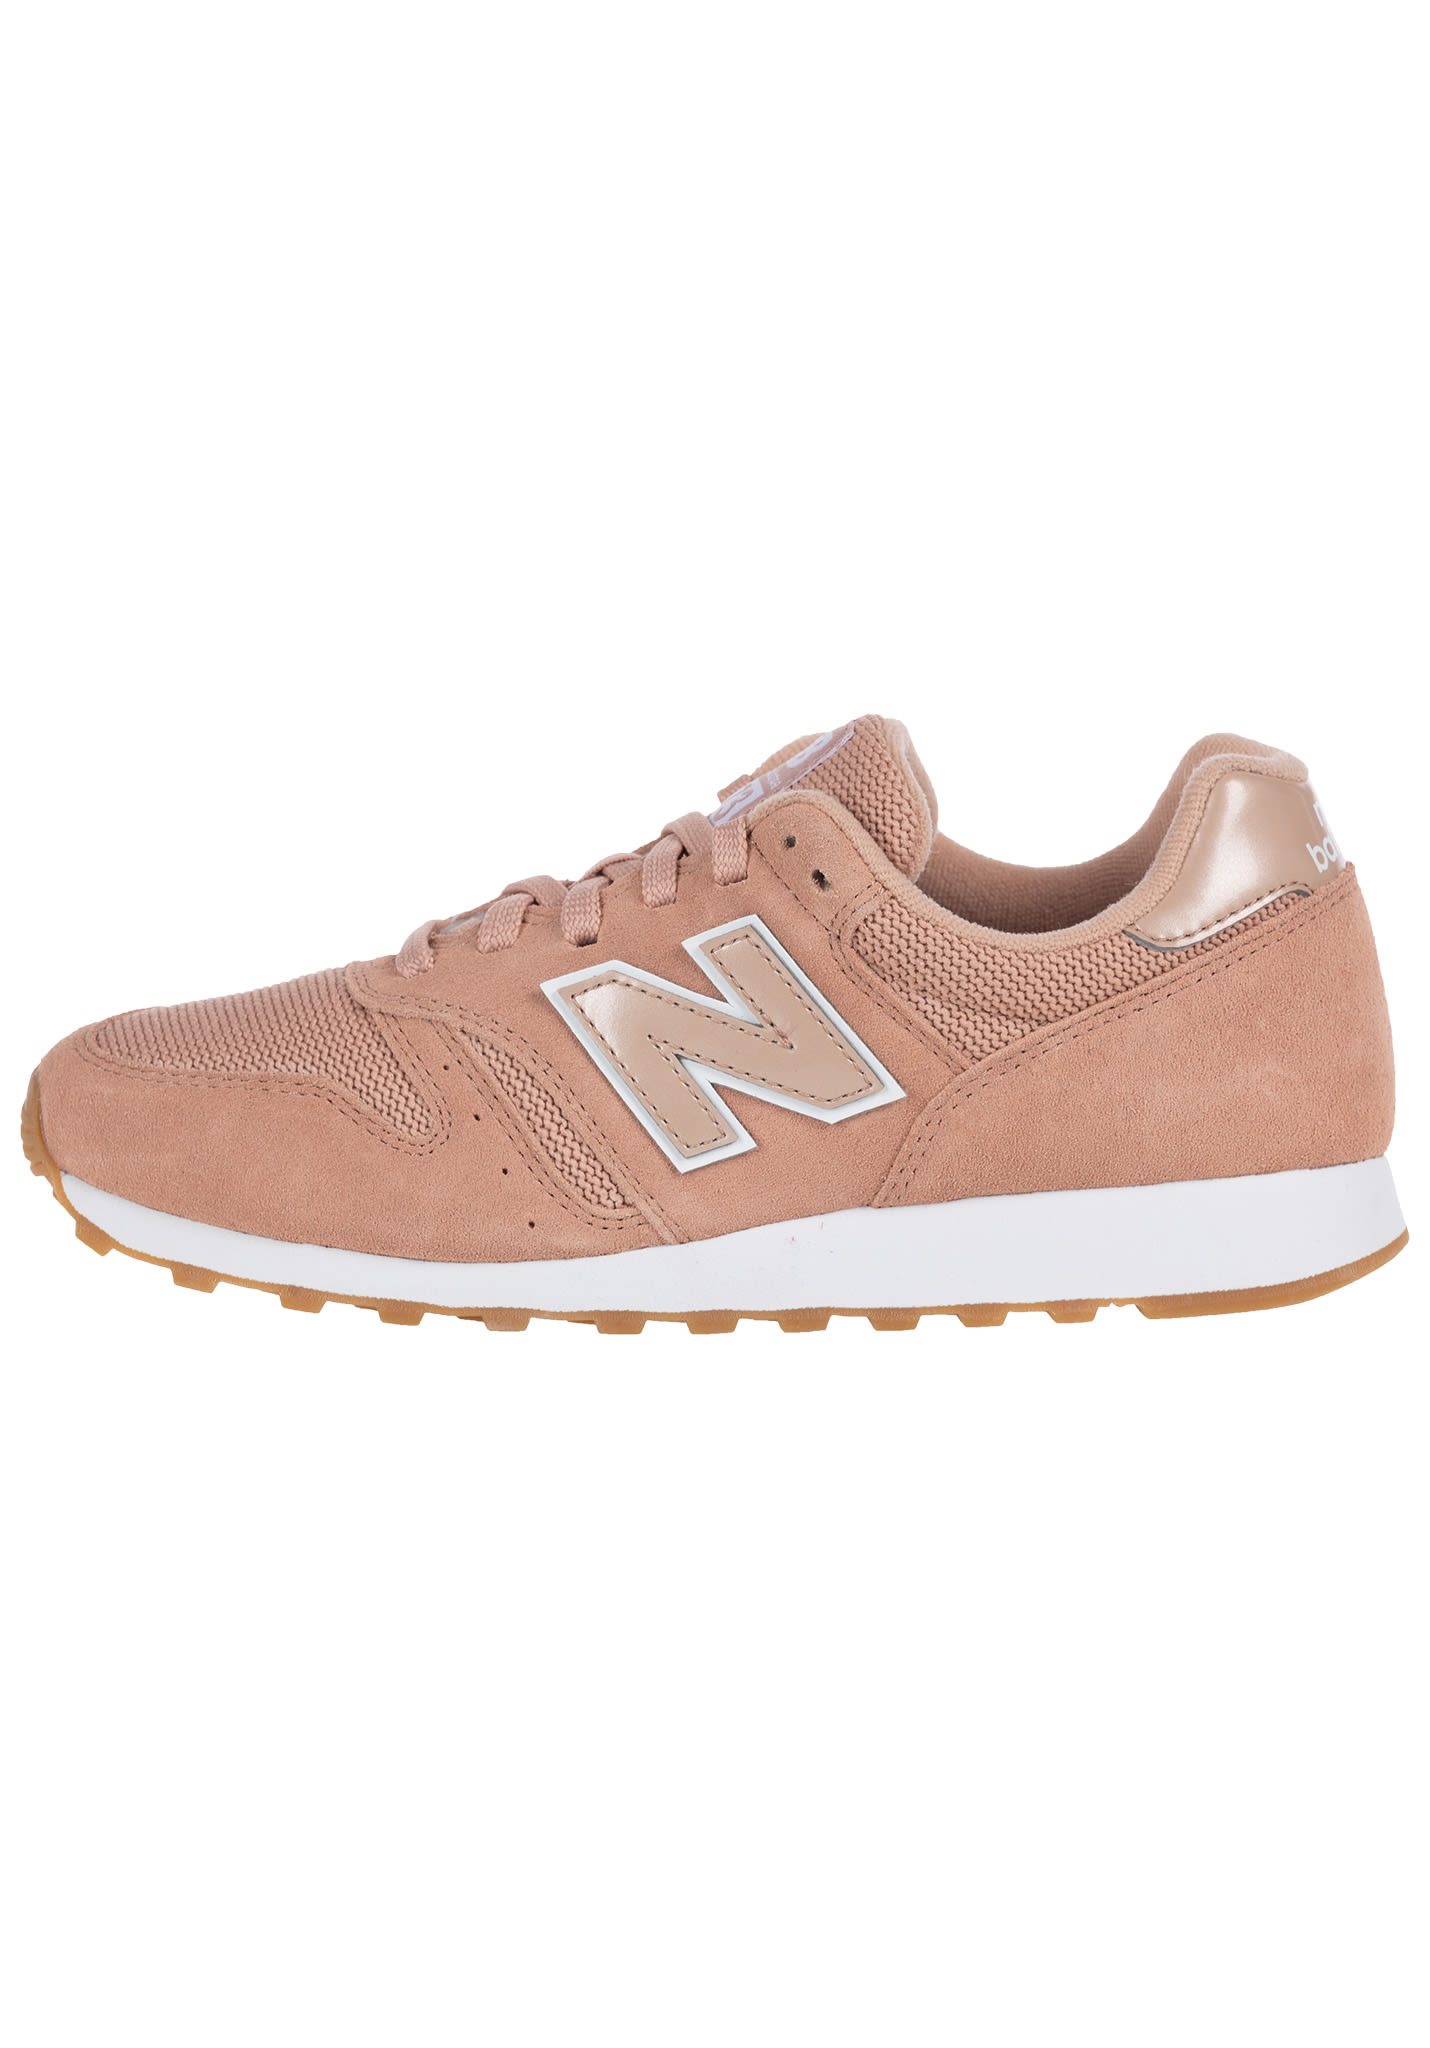 NEW BALANCE WL373 B Sneakers for Women Pink